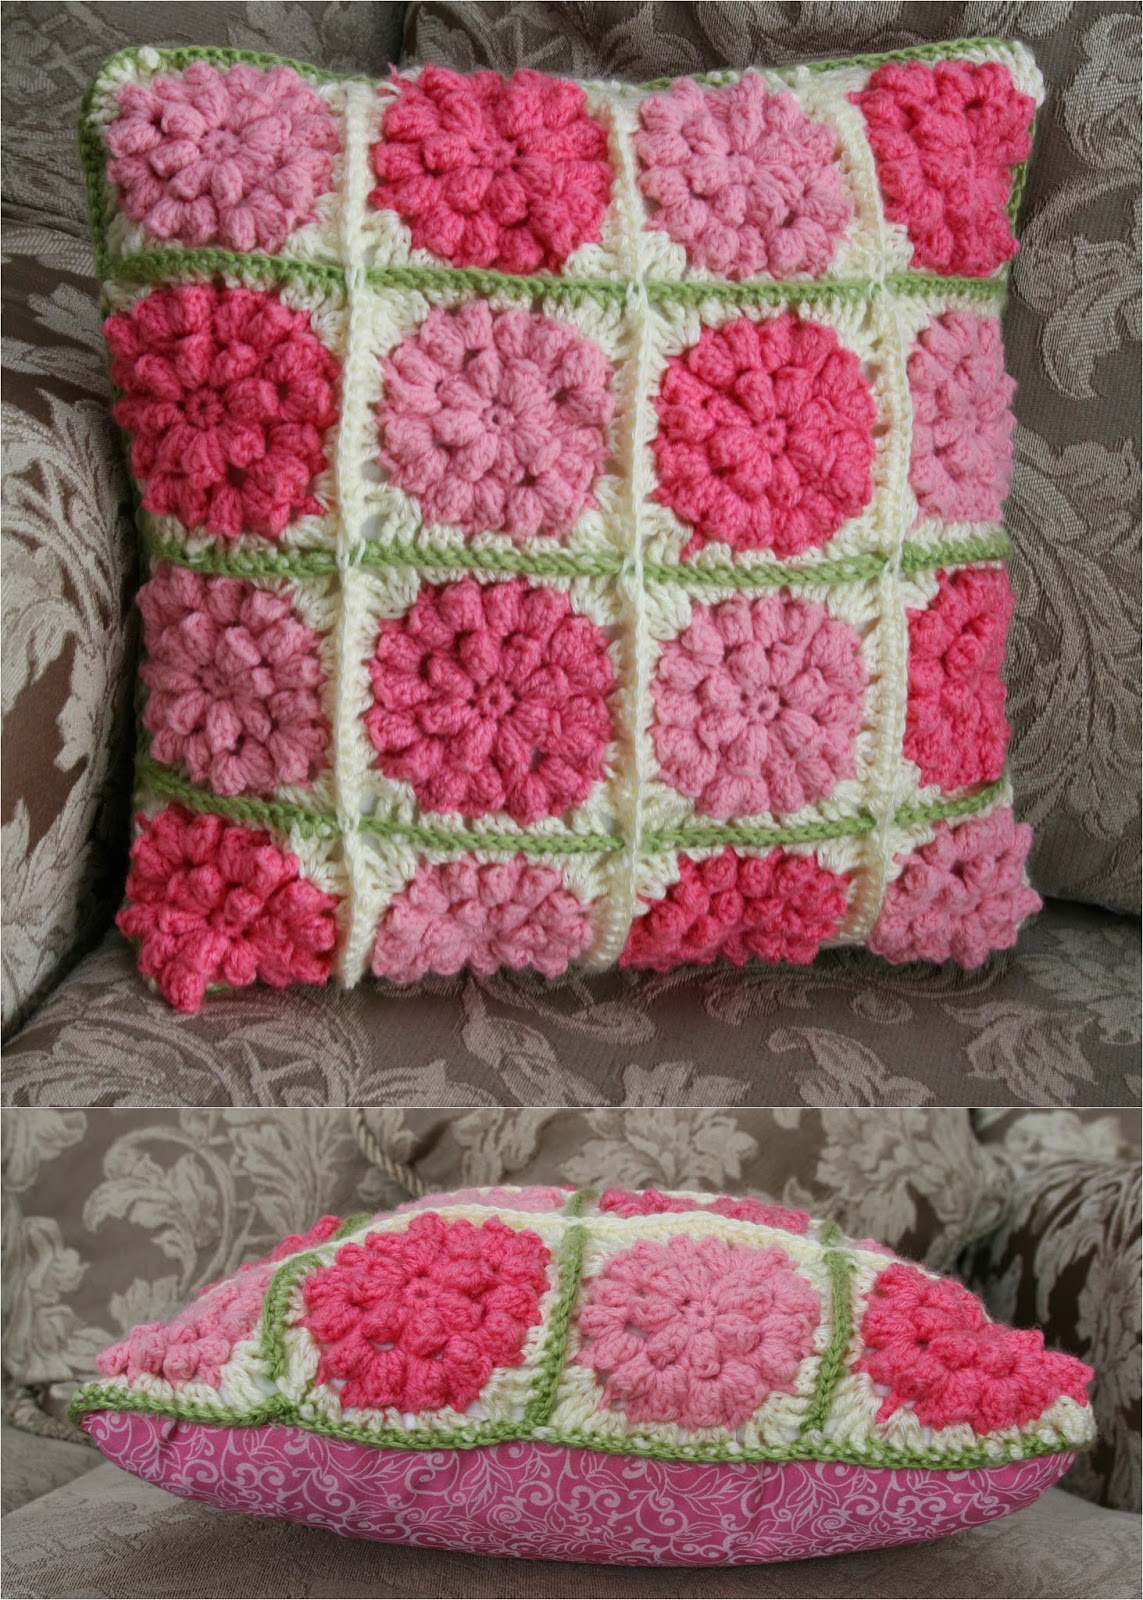 Crochet Pattern Granny Square With Flower : just between you and me: Crochet: Granny Square Flower Pillow